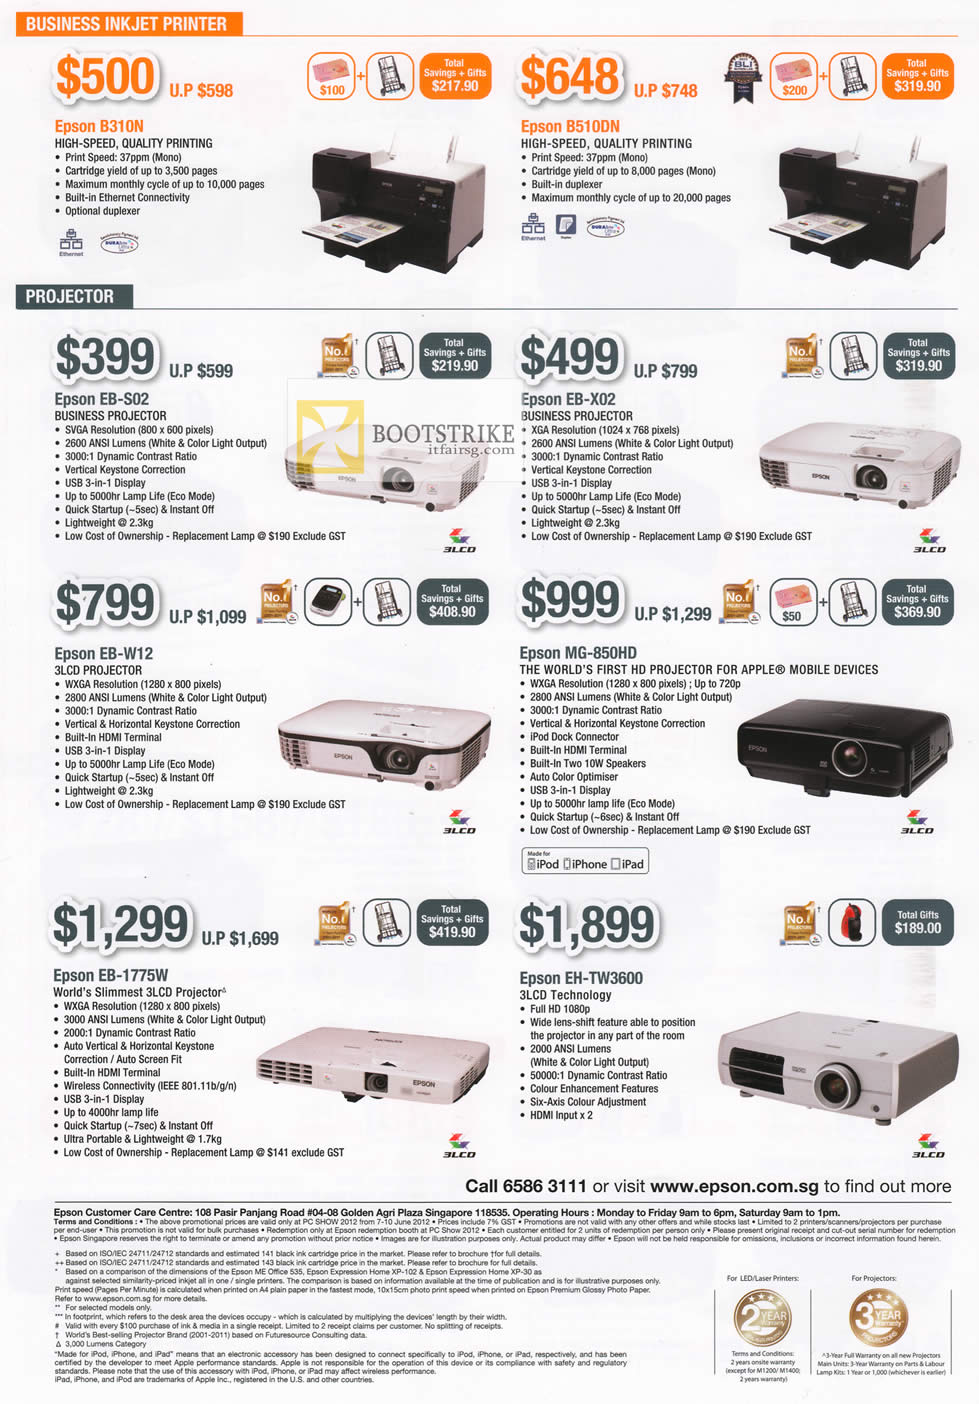 PC SHOW 2012 price list image brochure of Epson Printers Projectors B310N, B510DN, EB-S02, EB-X02, MG-850HD, EB-W12, EB-1775W, EH-TW3600